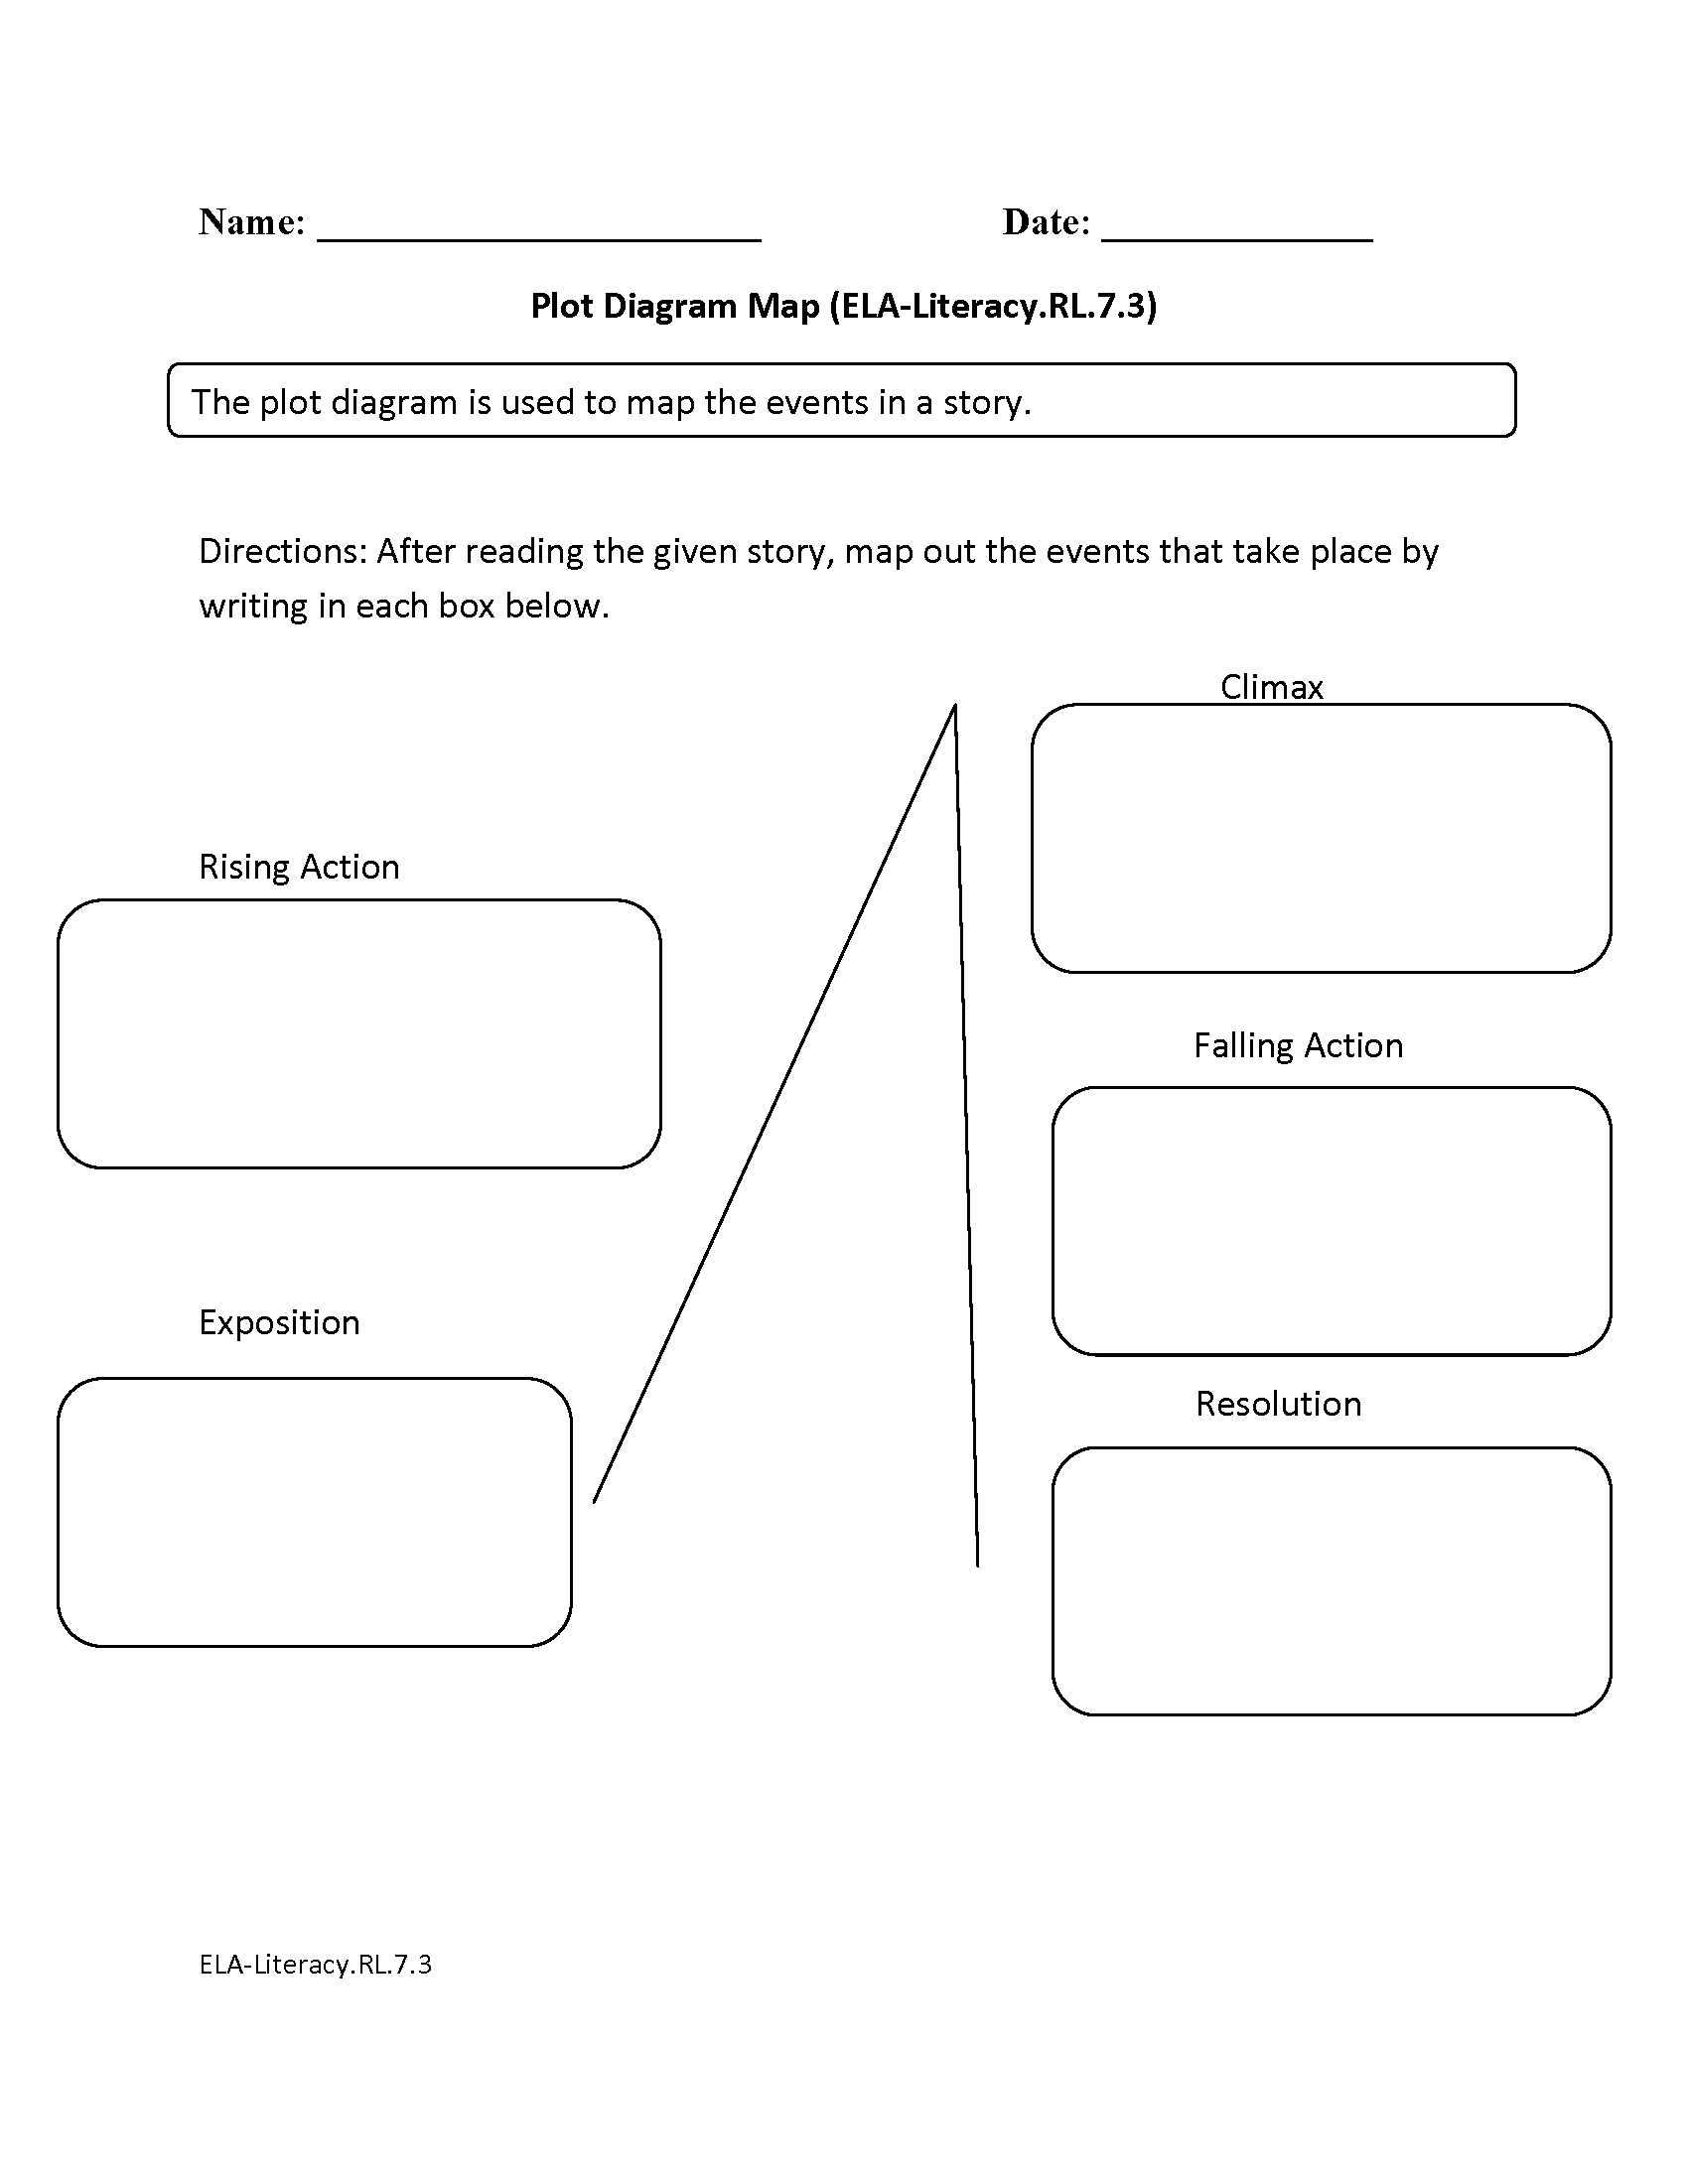 Worksheets Worksheets On Plot plot diagram map ela literacy rl 7 3 reading literature worksheet worksheet